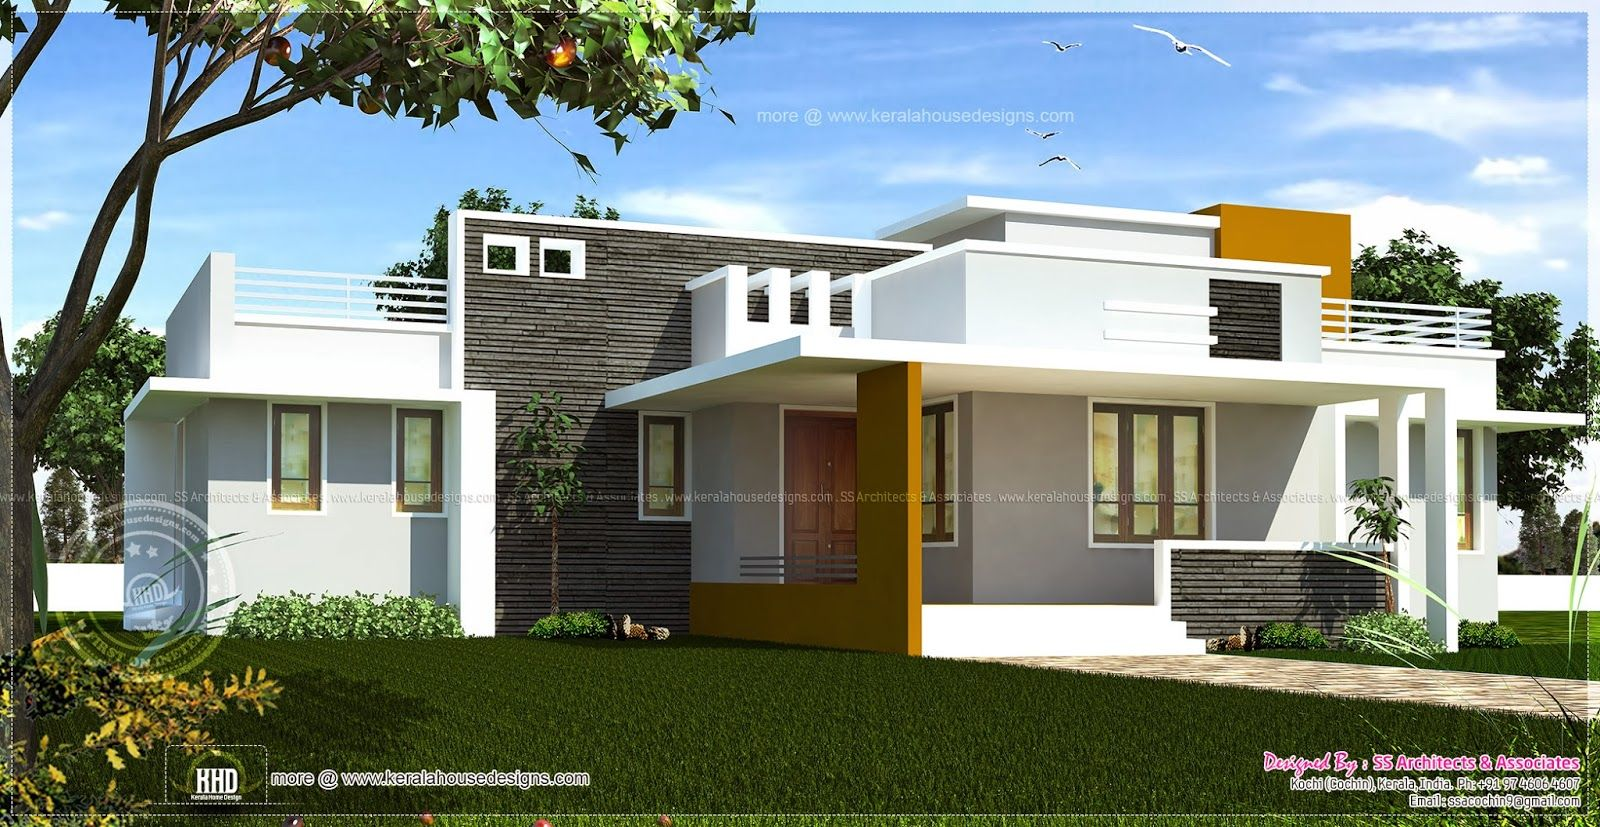 Excellent single home designs single floor contemporary for Best single floor house plans